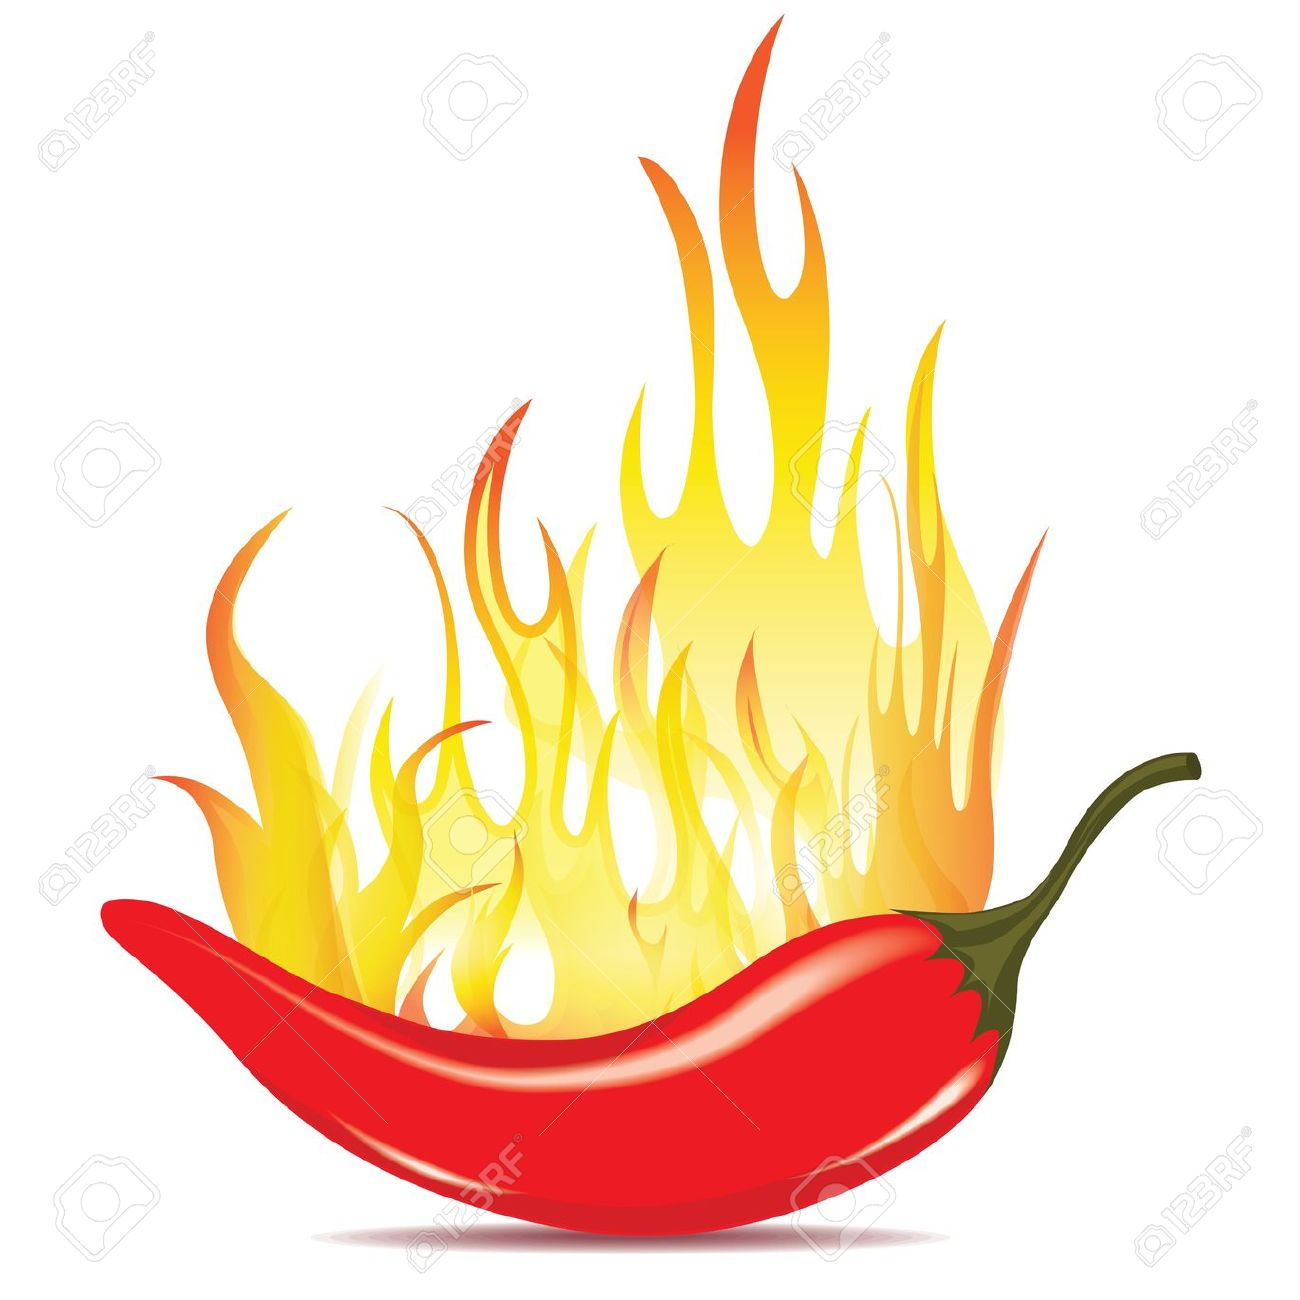 Hot Pepper Plant Images & Stock Pictures. Royalty Free Hot Pepper.